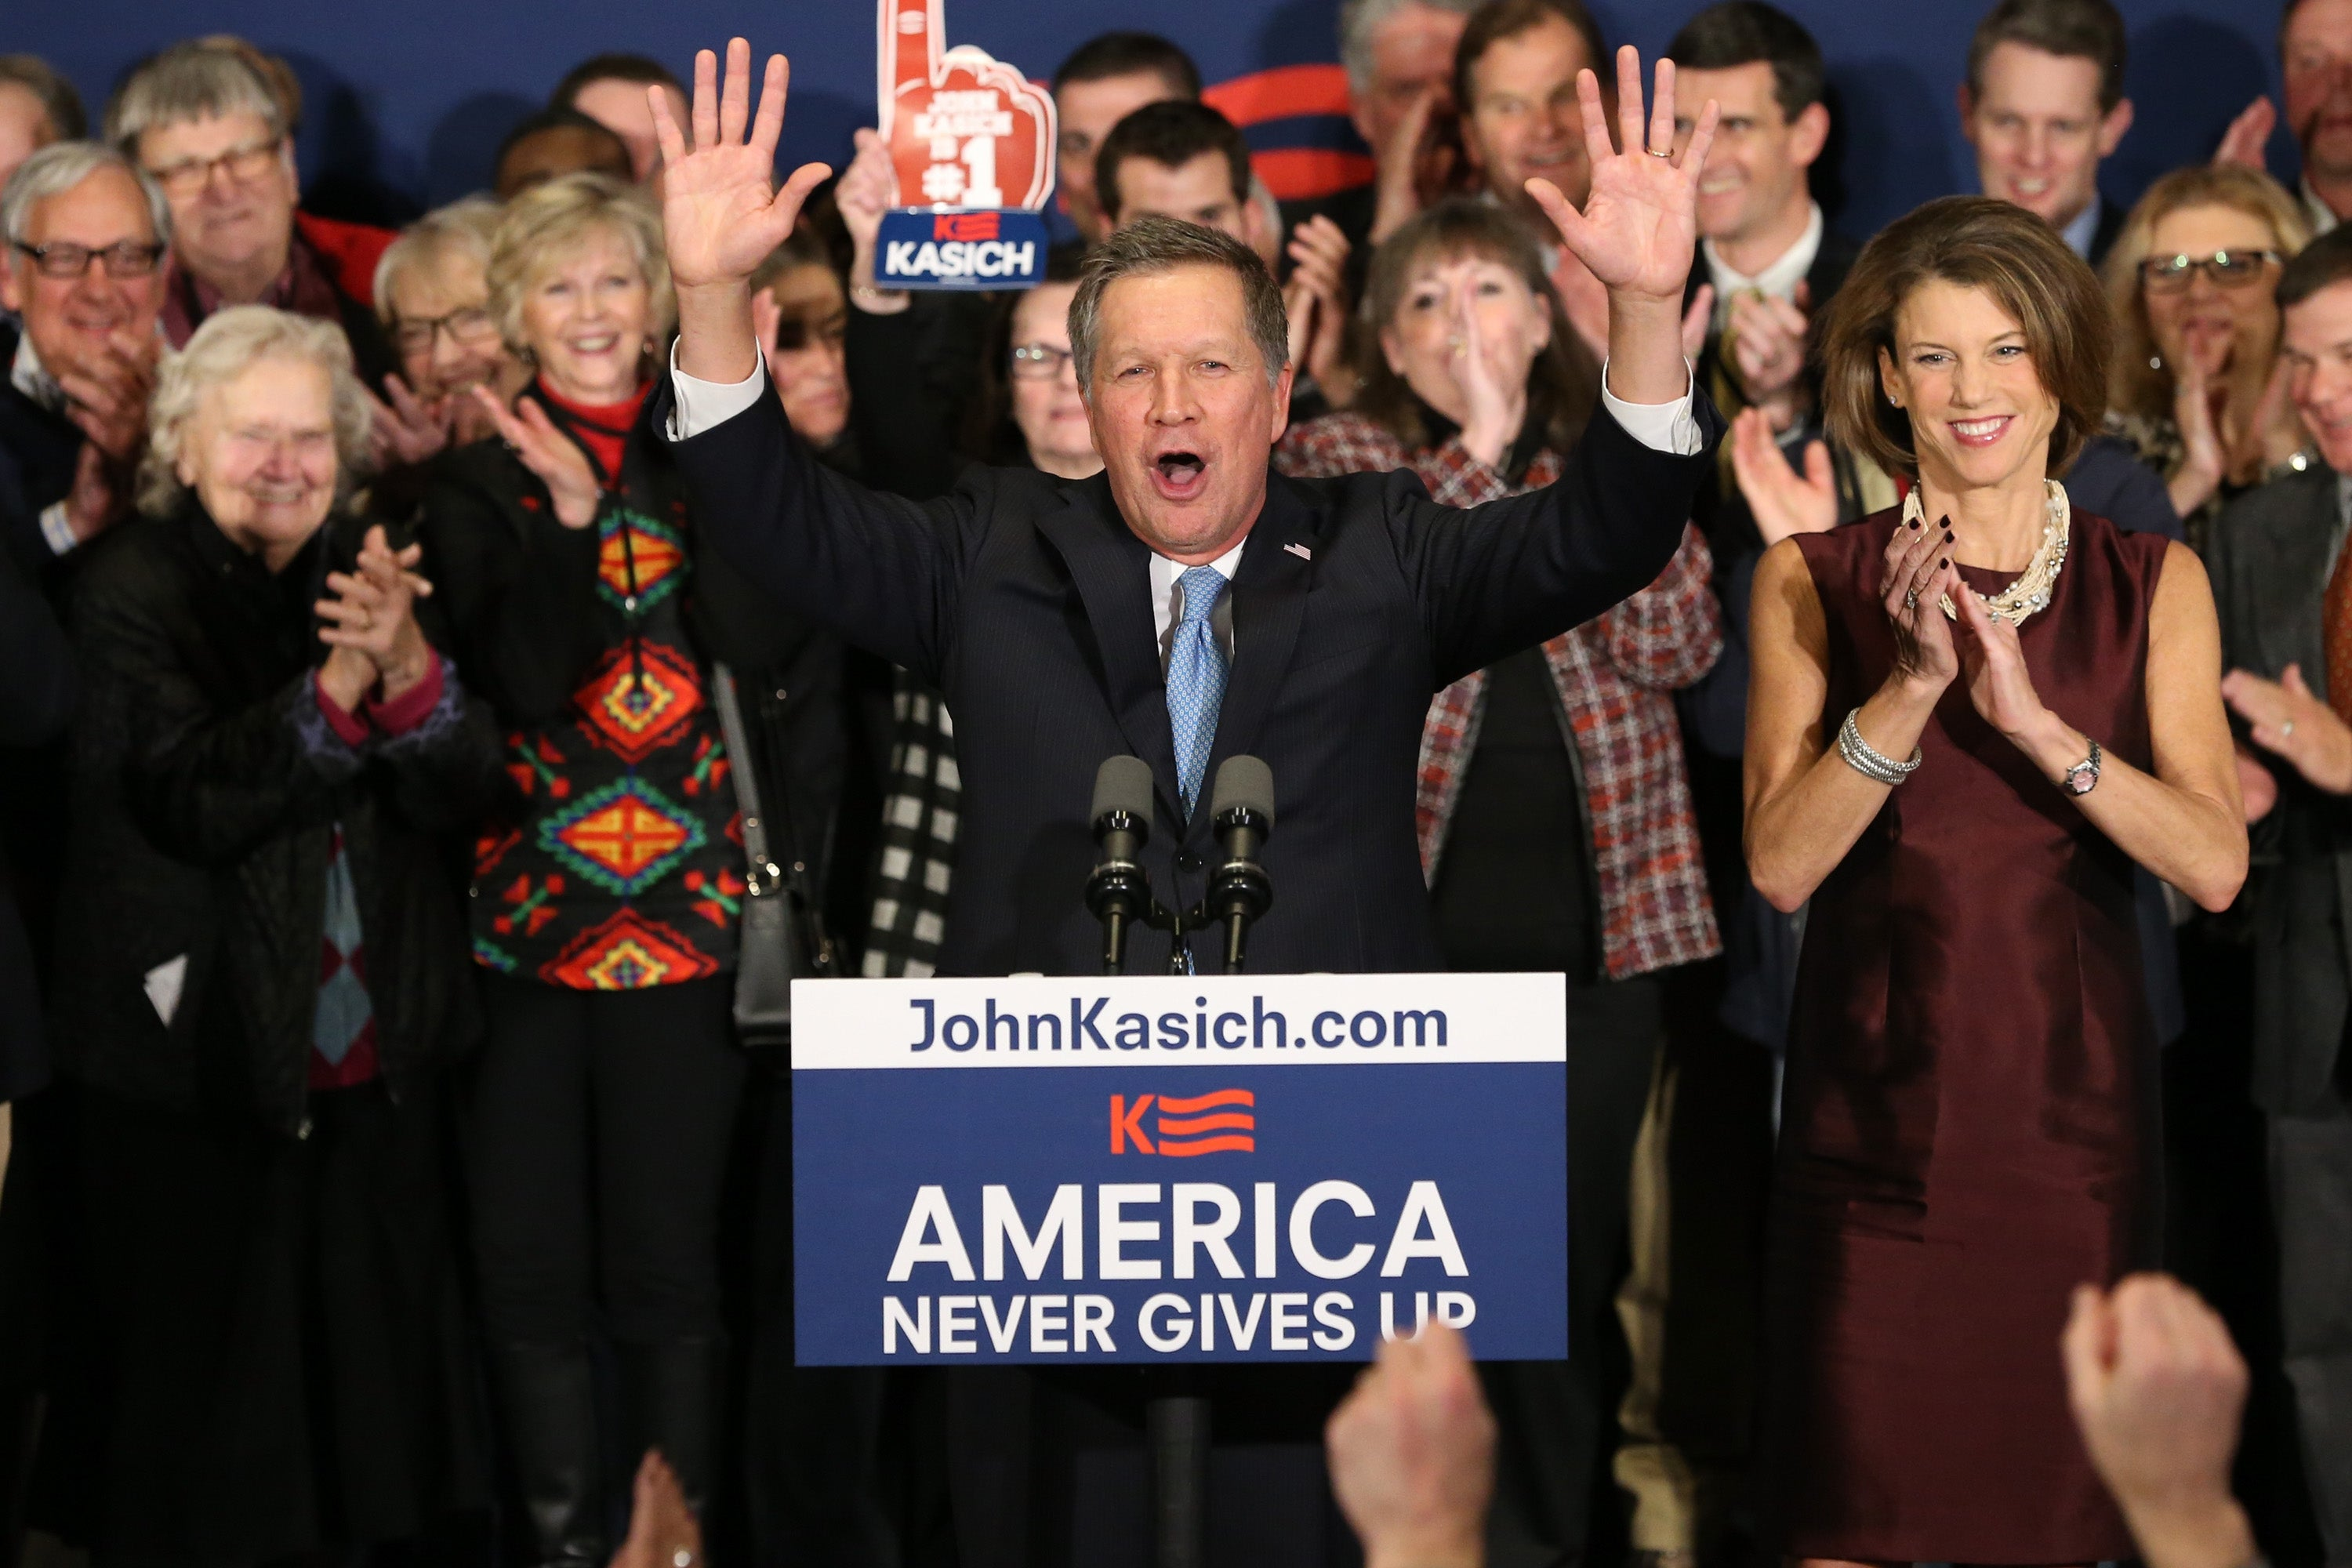 Kasich speaks at a campaign gathering with supporters upon placing second place in the primary.